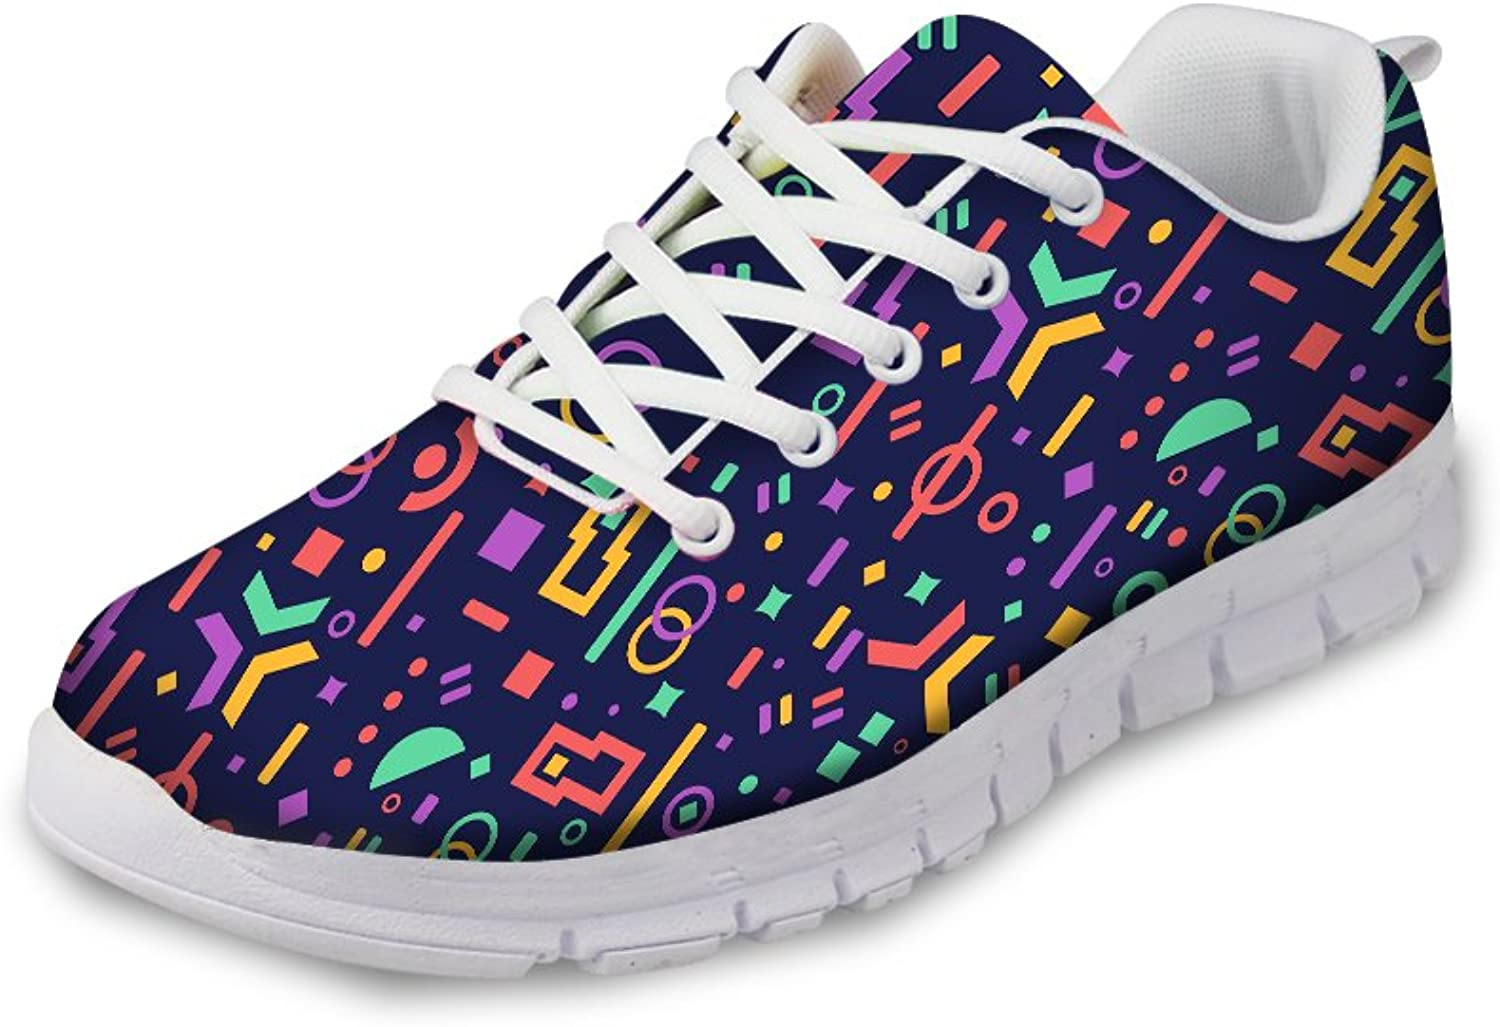 Women Sneaker Comfort Sports shoes Stylish Print Casual Lace Up Slip On shoes